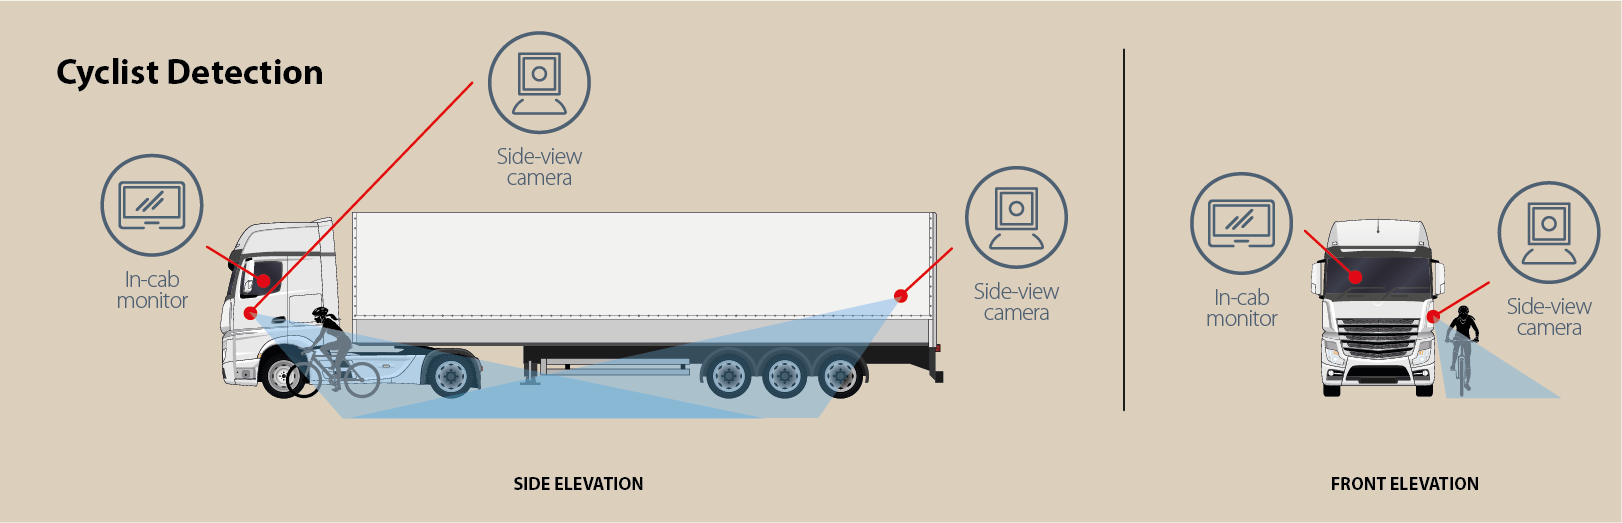 Spillard Human Detection System is the technological answer to safer driver and pedestrian co-existence. - HGV HDS diagram WEB Cycling 2